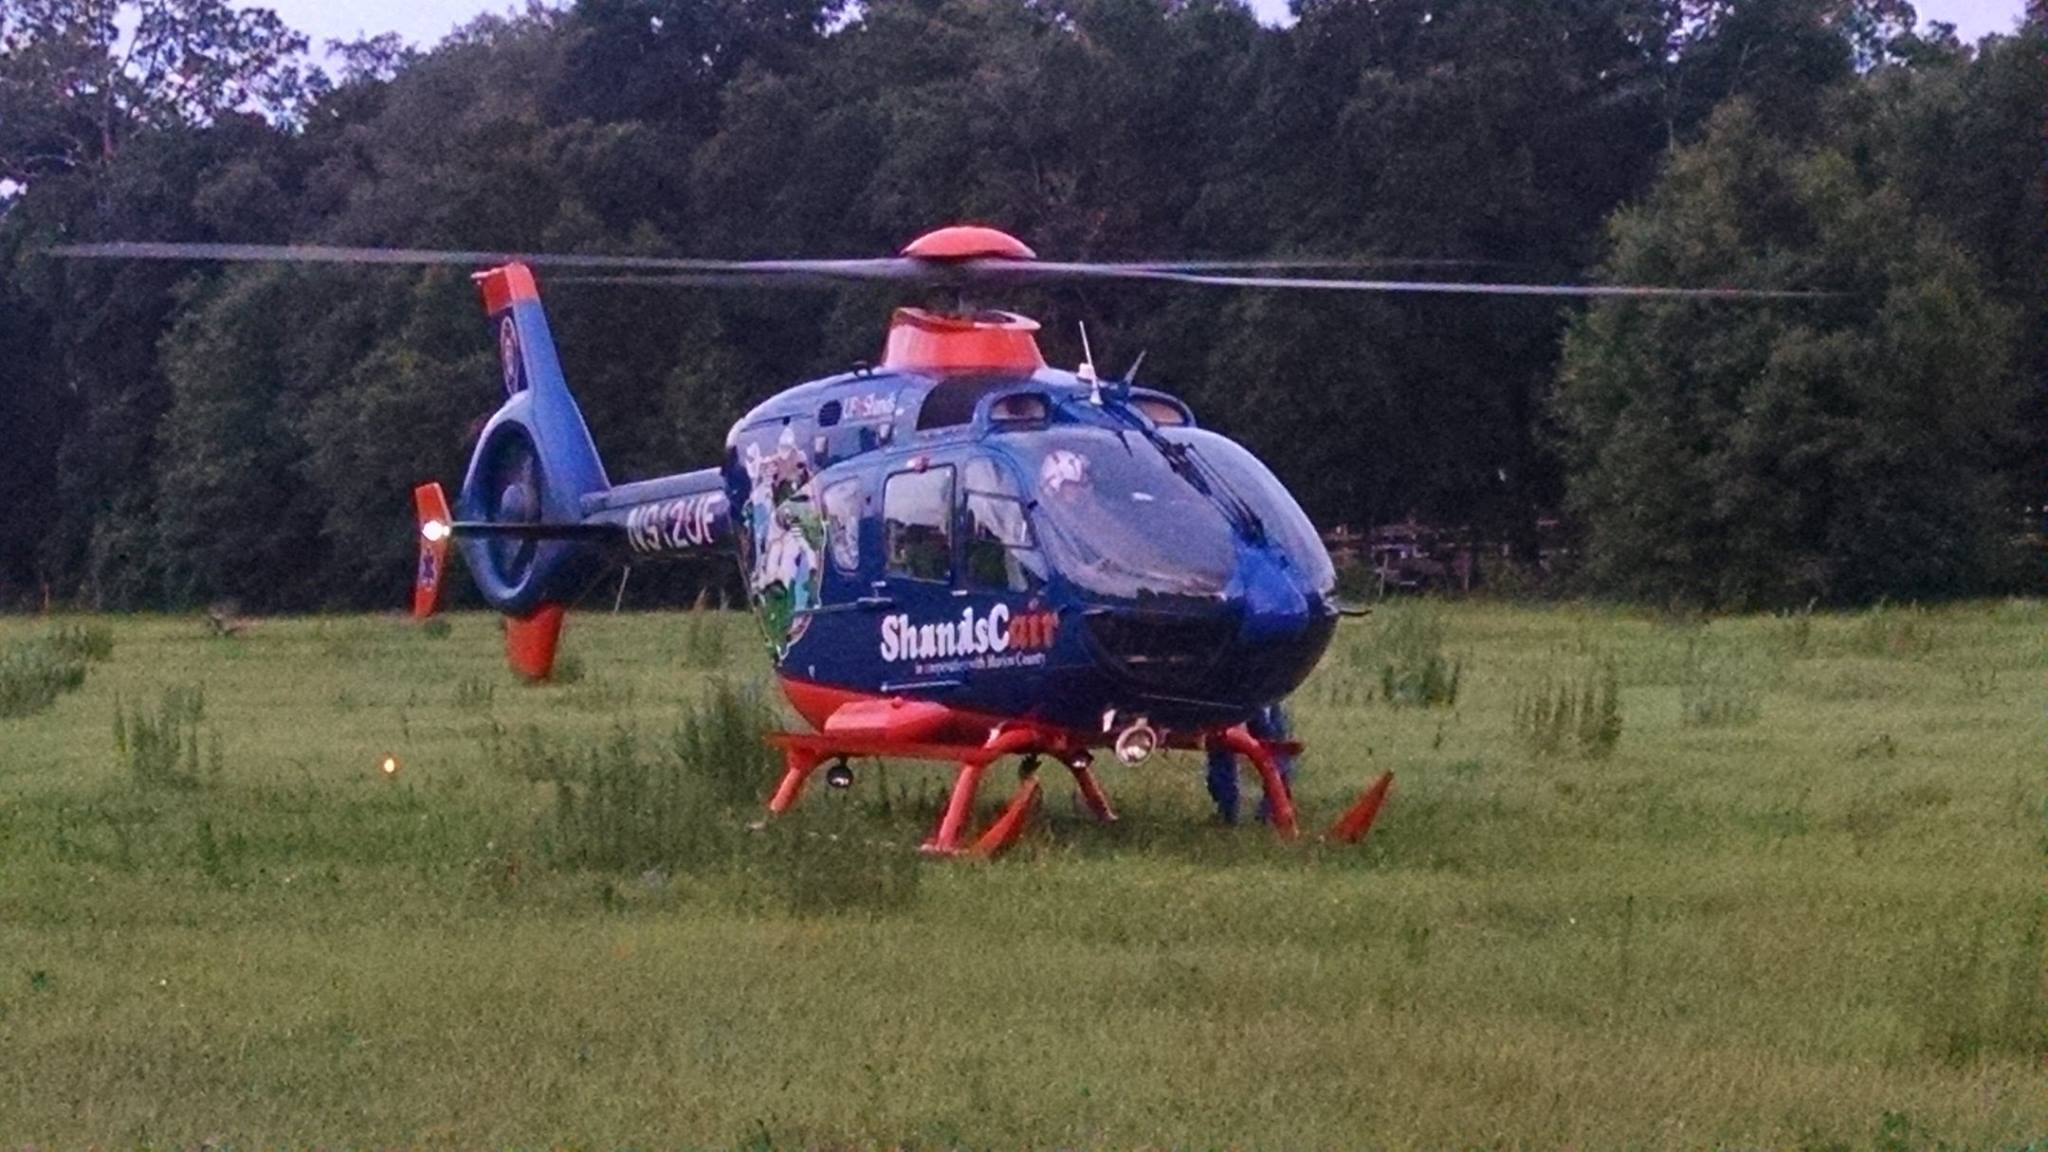 ocala news, marion ocunty news, car crash, speeding, shandscair, Man airlifted after crash near Candler